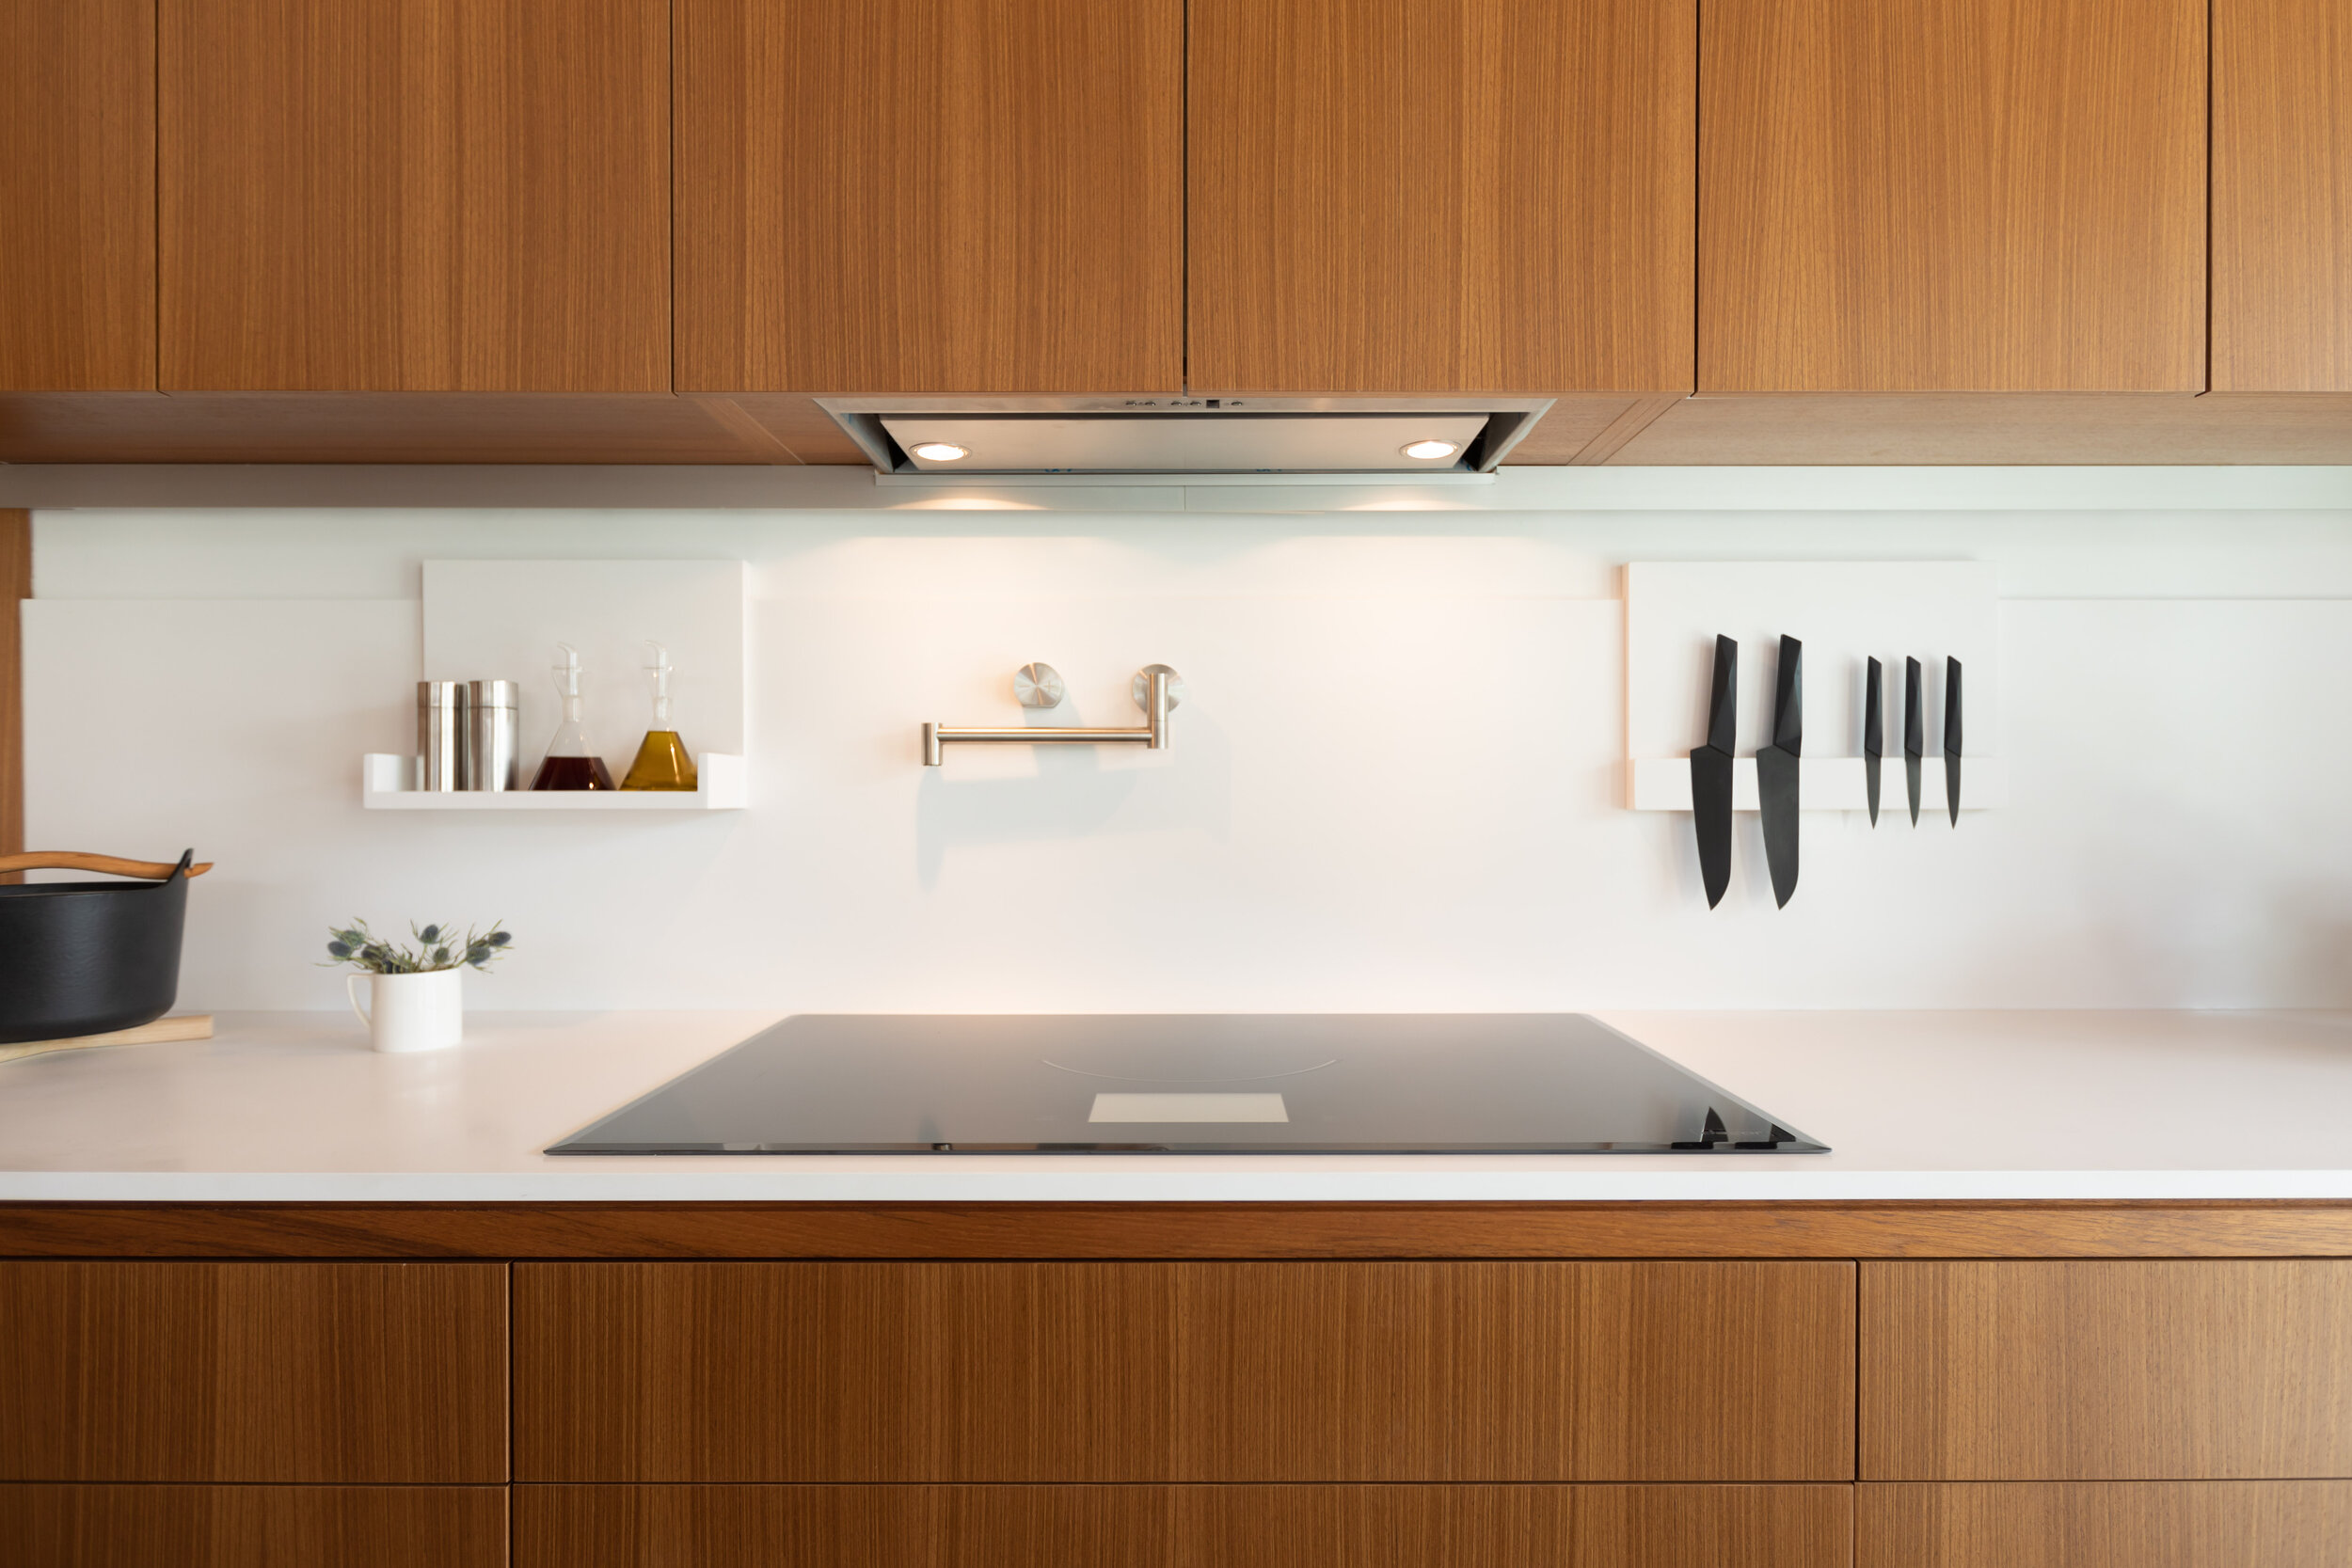 Tips For An Easy To Clean Dacor Kitchen In El Salvador Luxury Appliance Sales